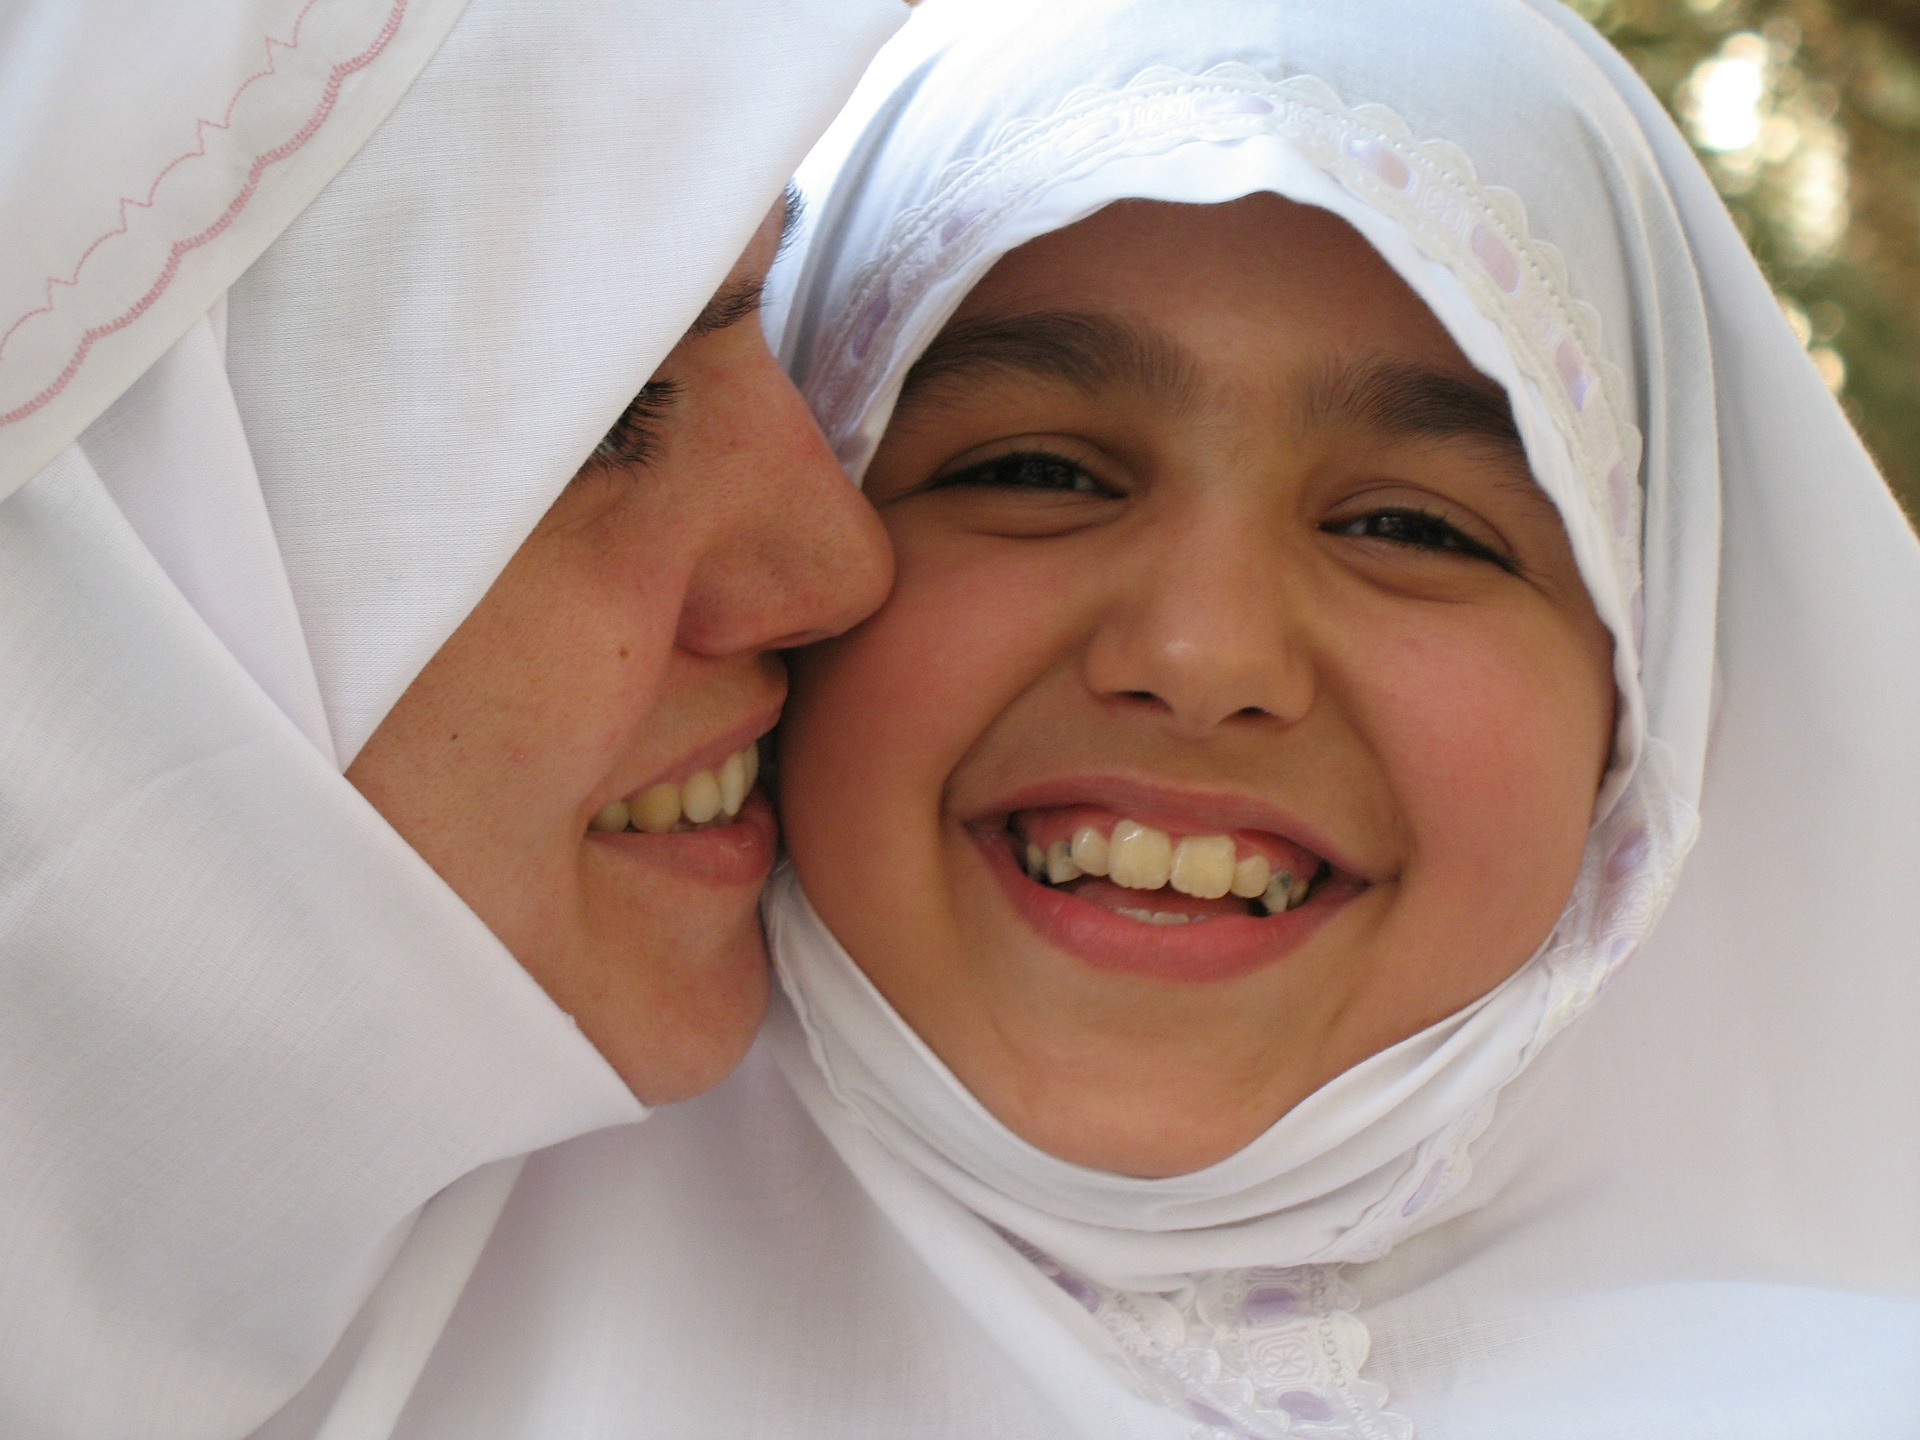 two smiling girls in burkas